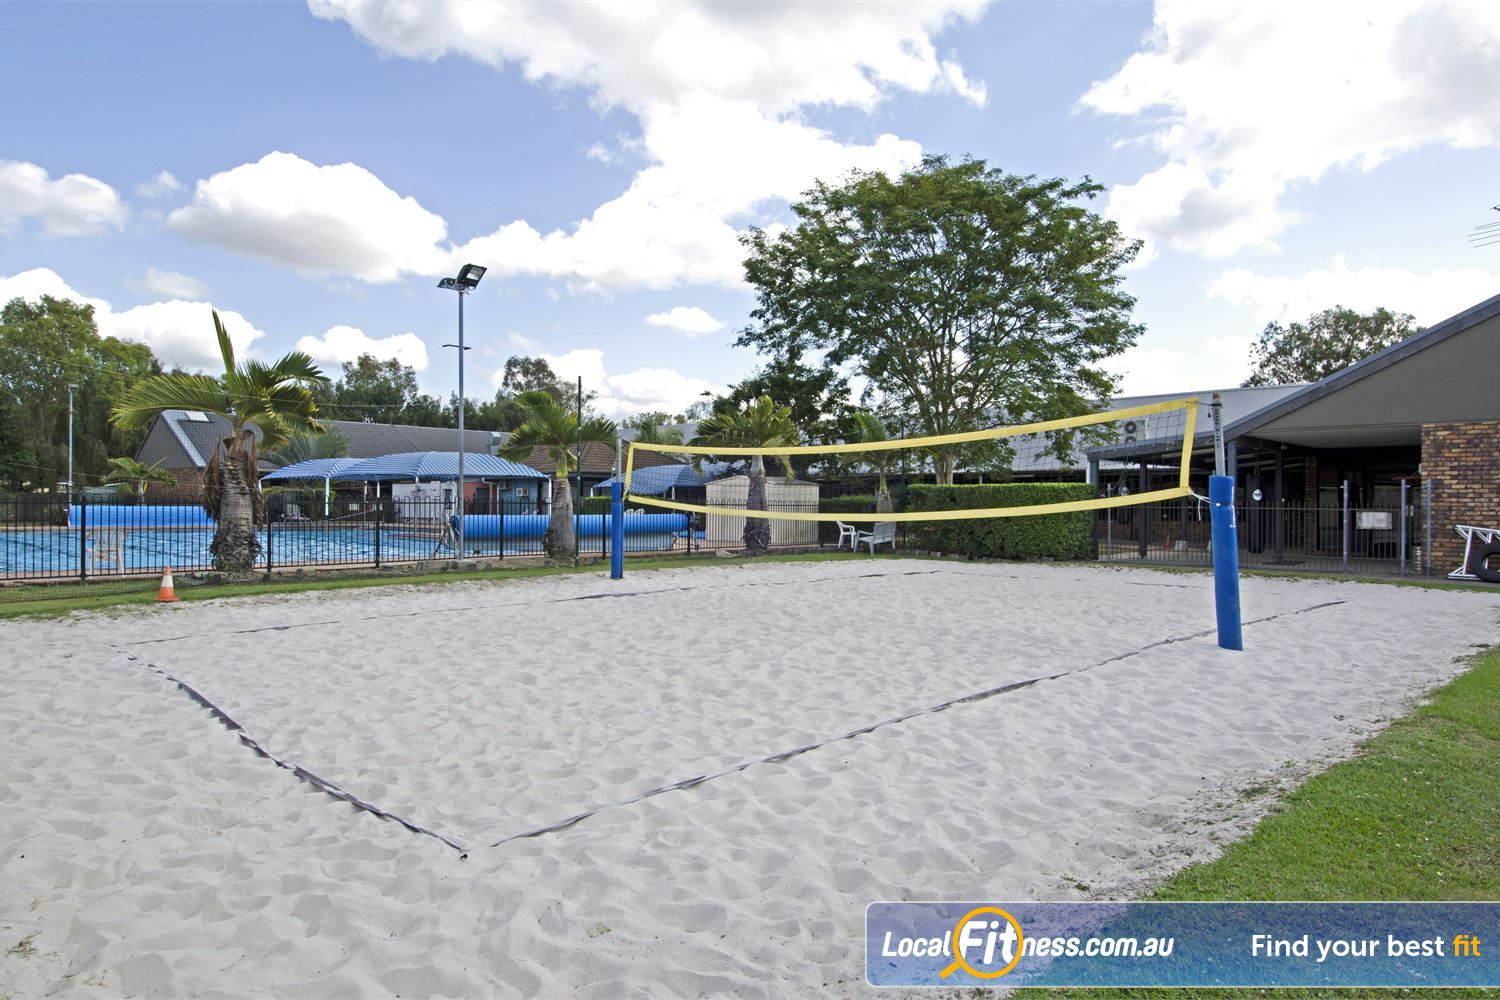 Goodlife Health Clubs Near Zillmere A recreational beach atmosphere with sunshine, real sand and a fun beach volleyball court.